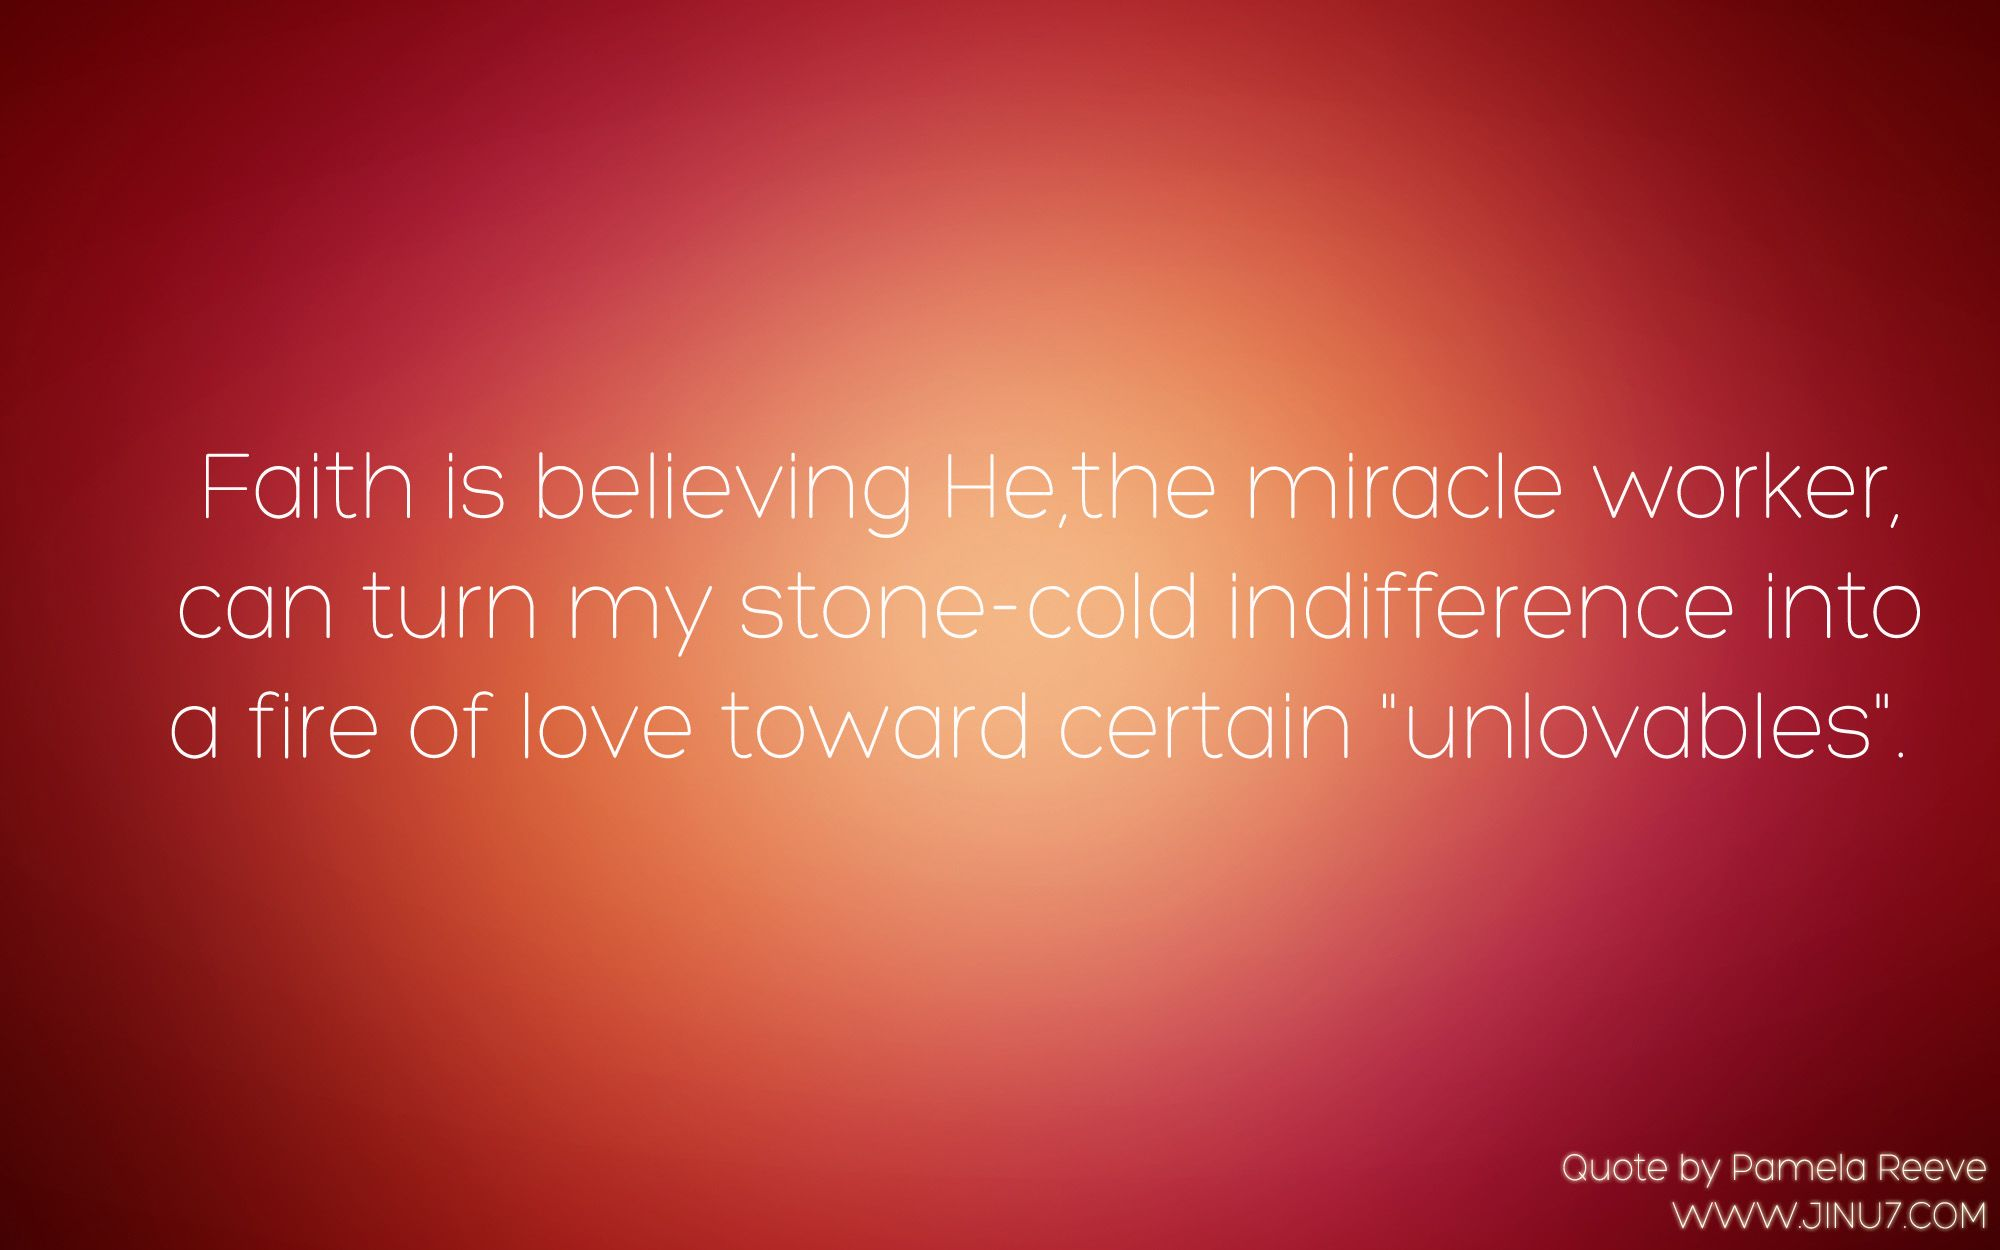 christ s love quotes